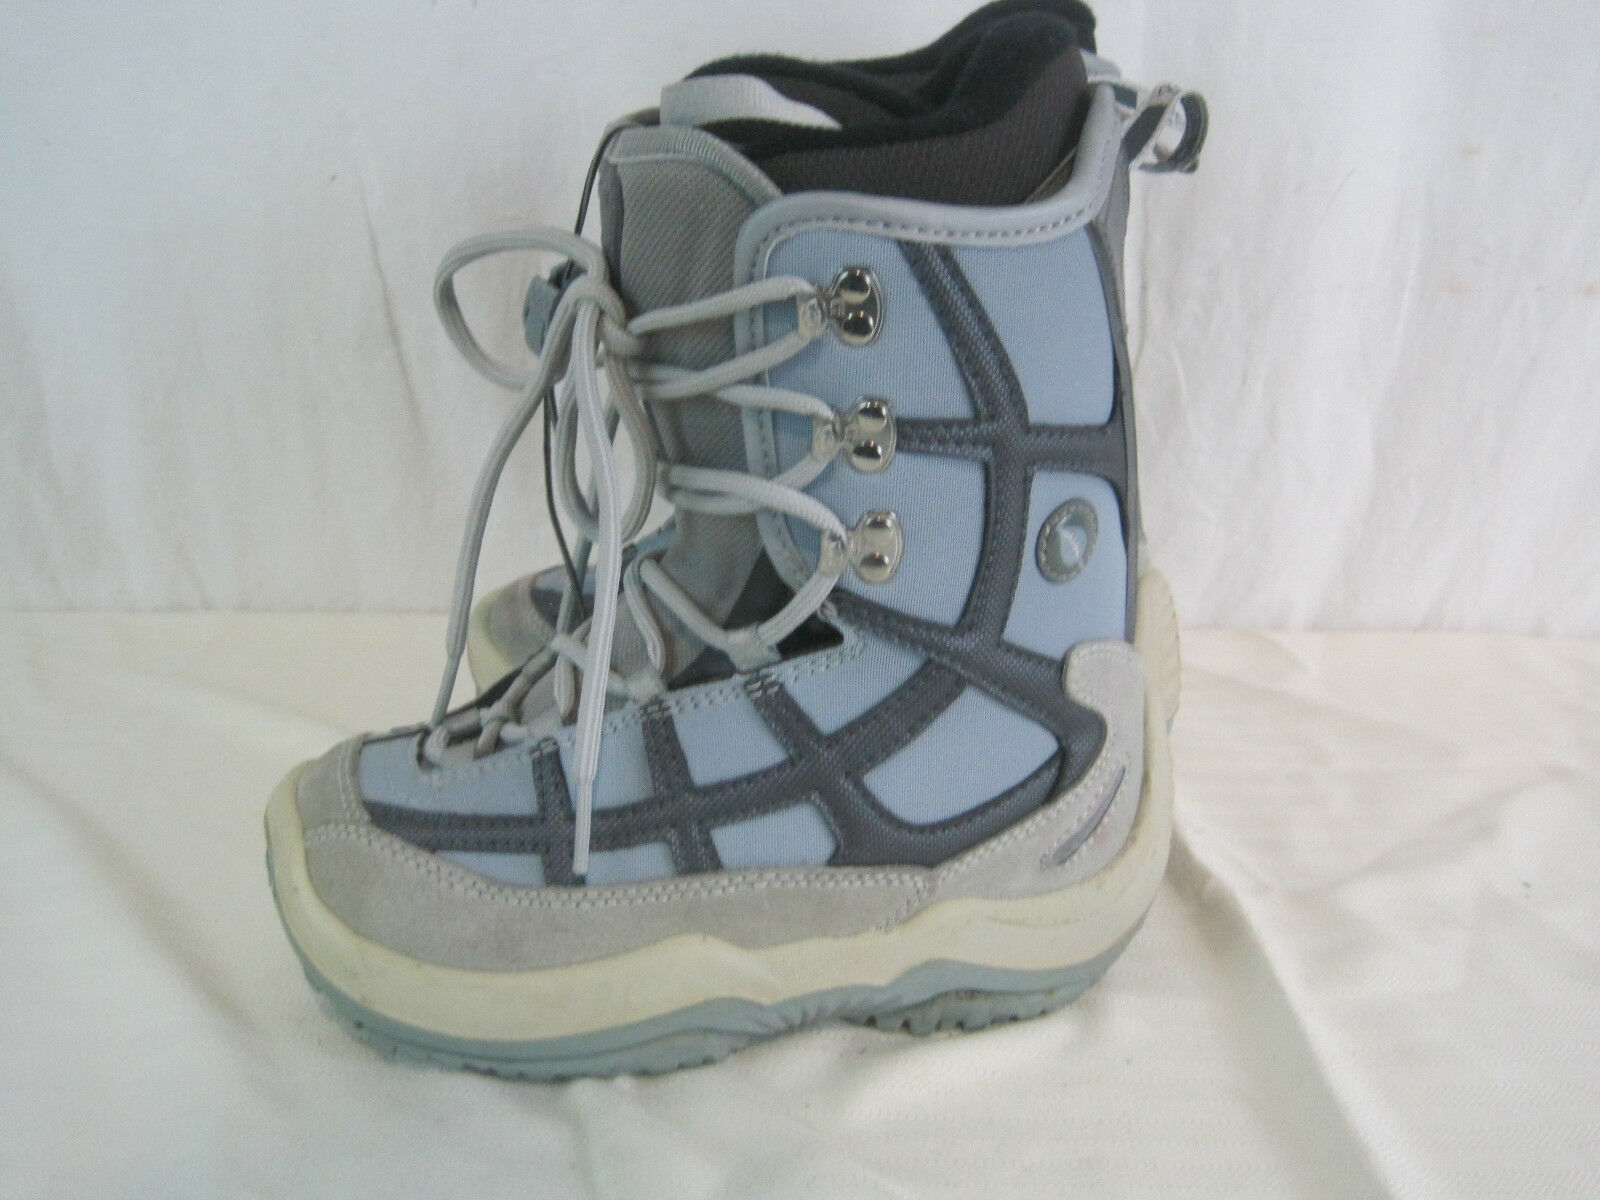 NORTHWAVE WOMENS SNOWBOARD BOOTS Size USM3.5 bluee Grey (HKY50-235)